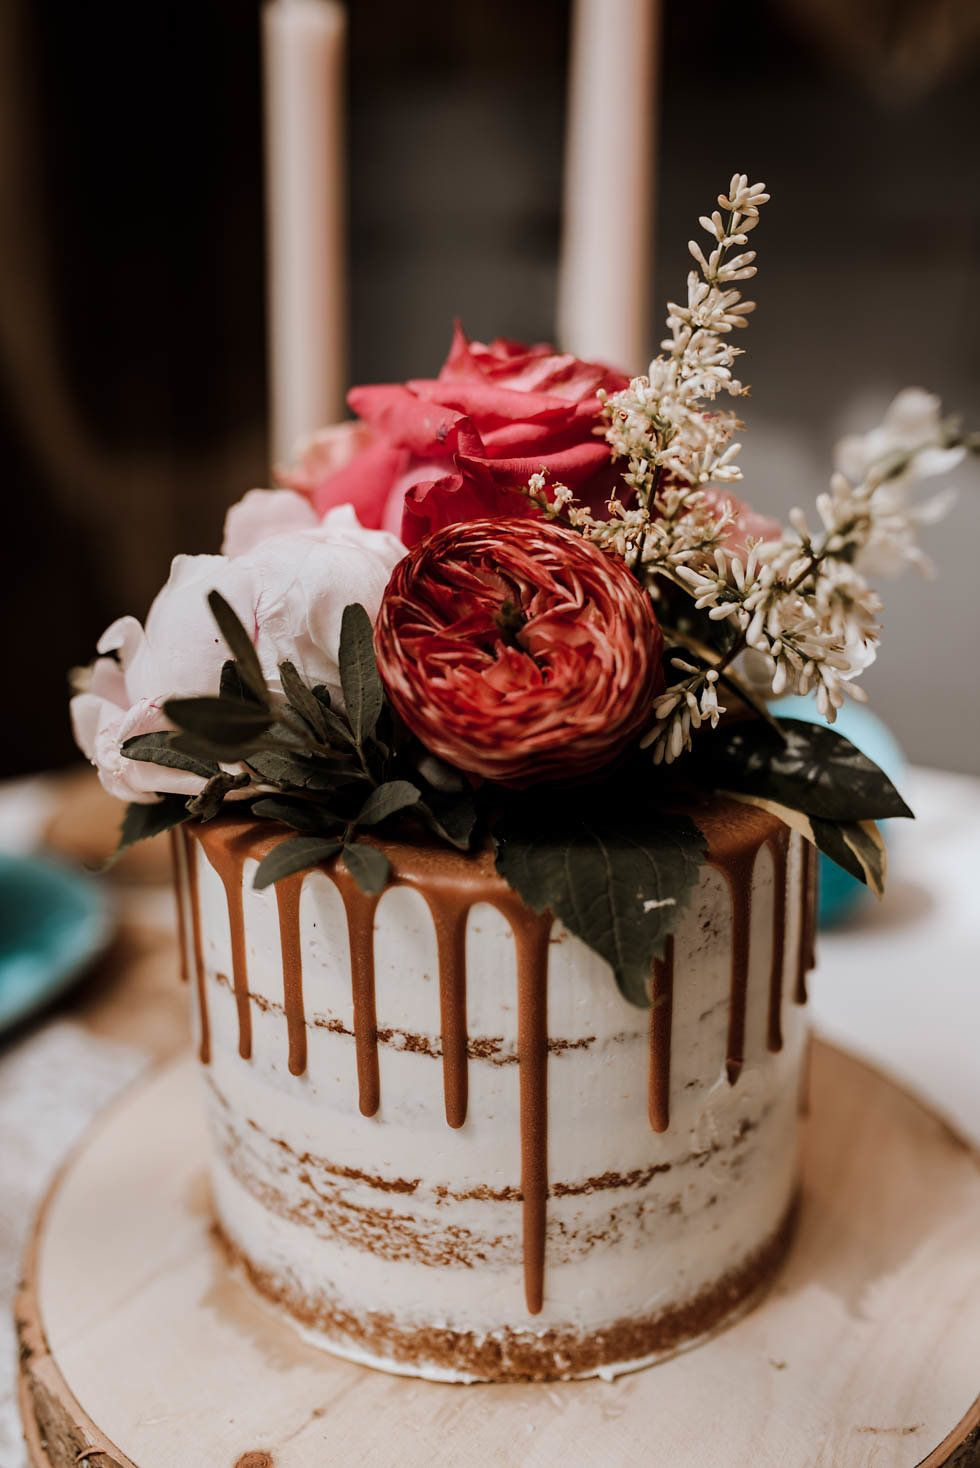 Pin Auf Labude Bridal Bouquets And Wedding Cakes